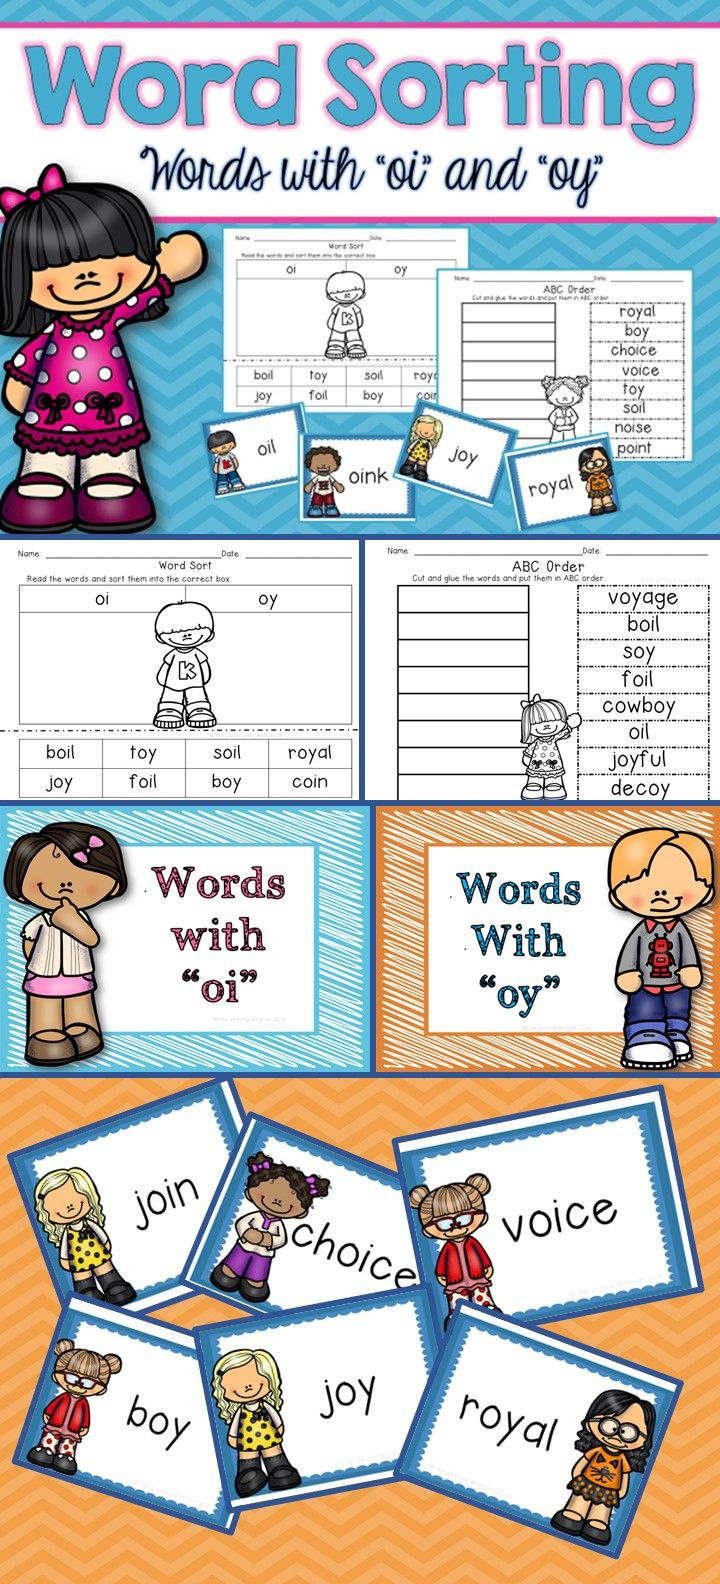 worksheet Oi And Oy Worksheets word sorts oy and oi writing worksheets sentences are you teaching your students about words with oy